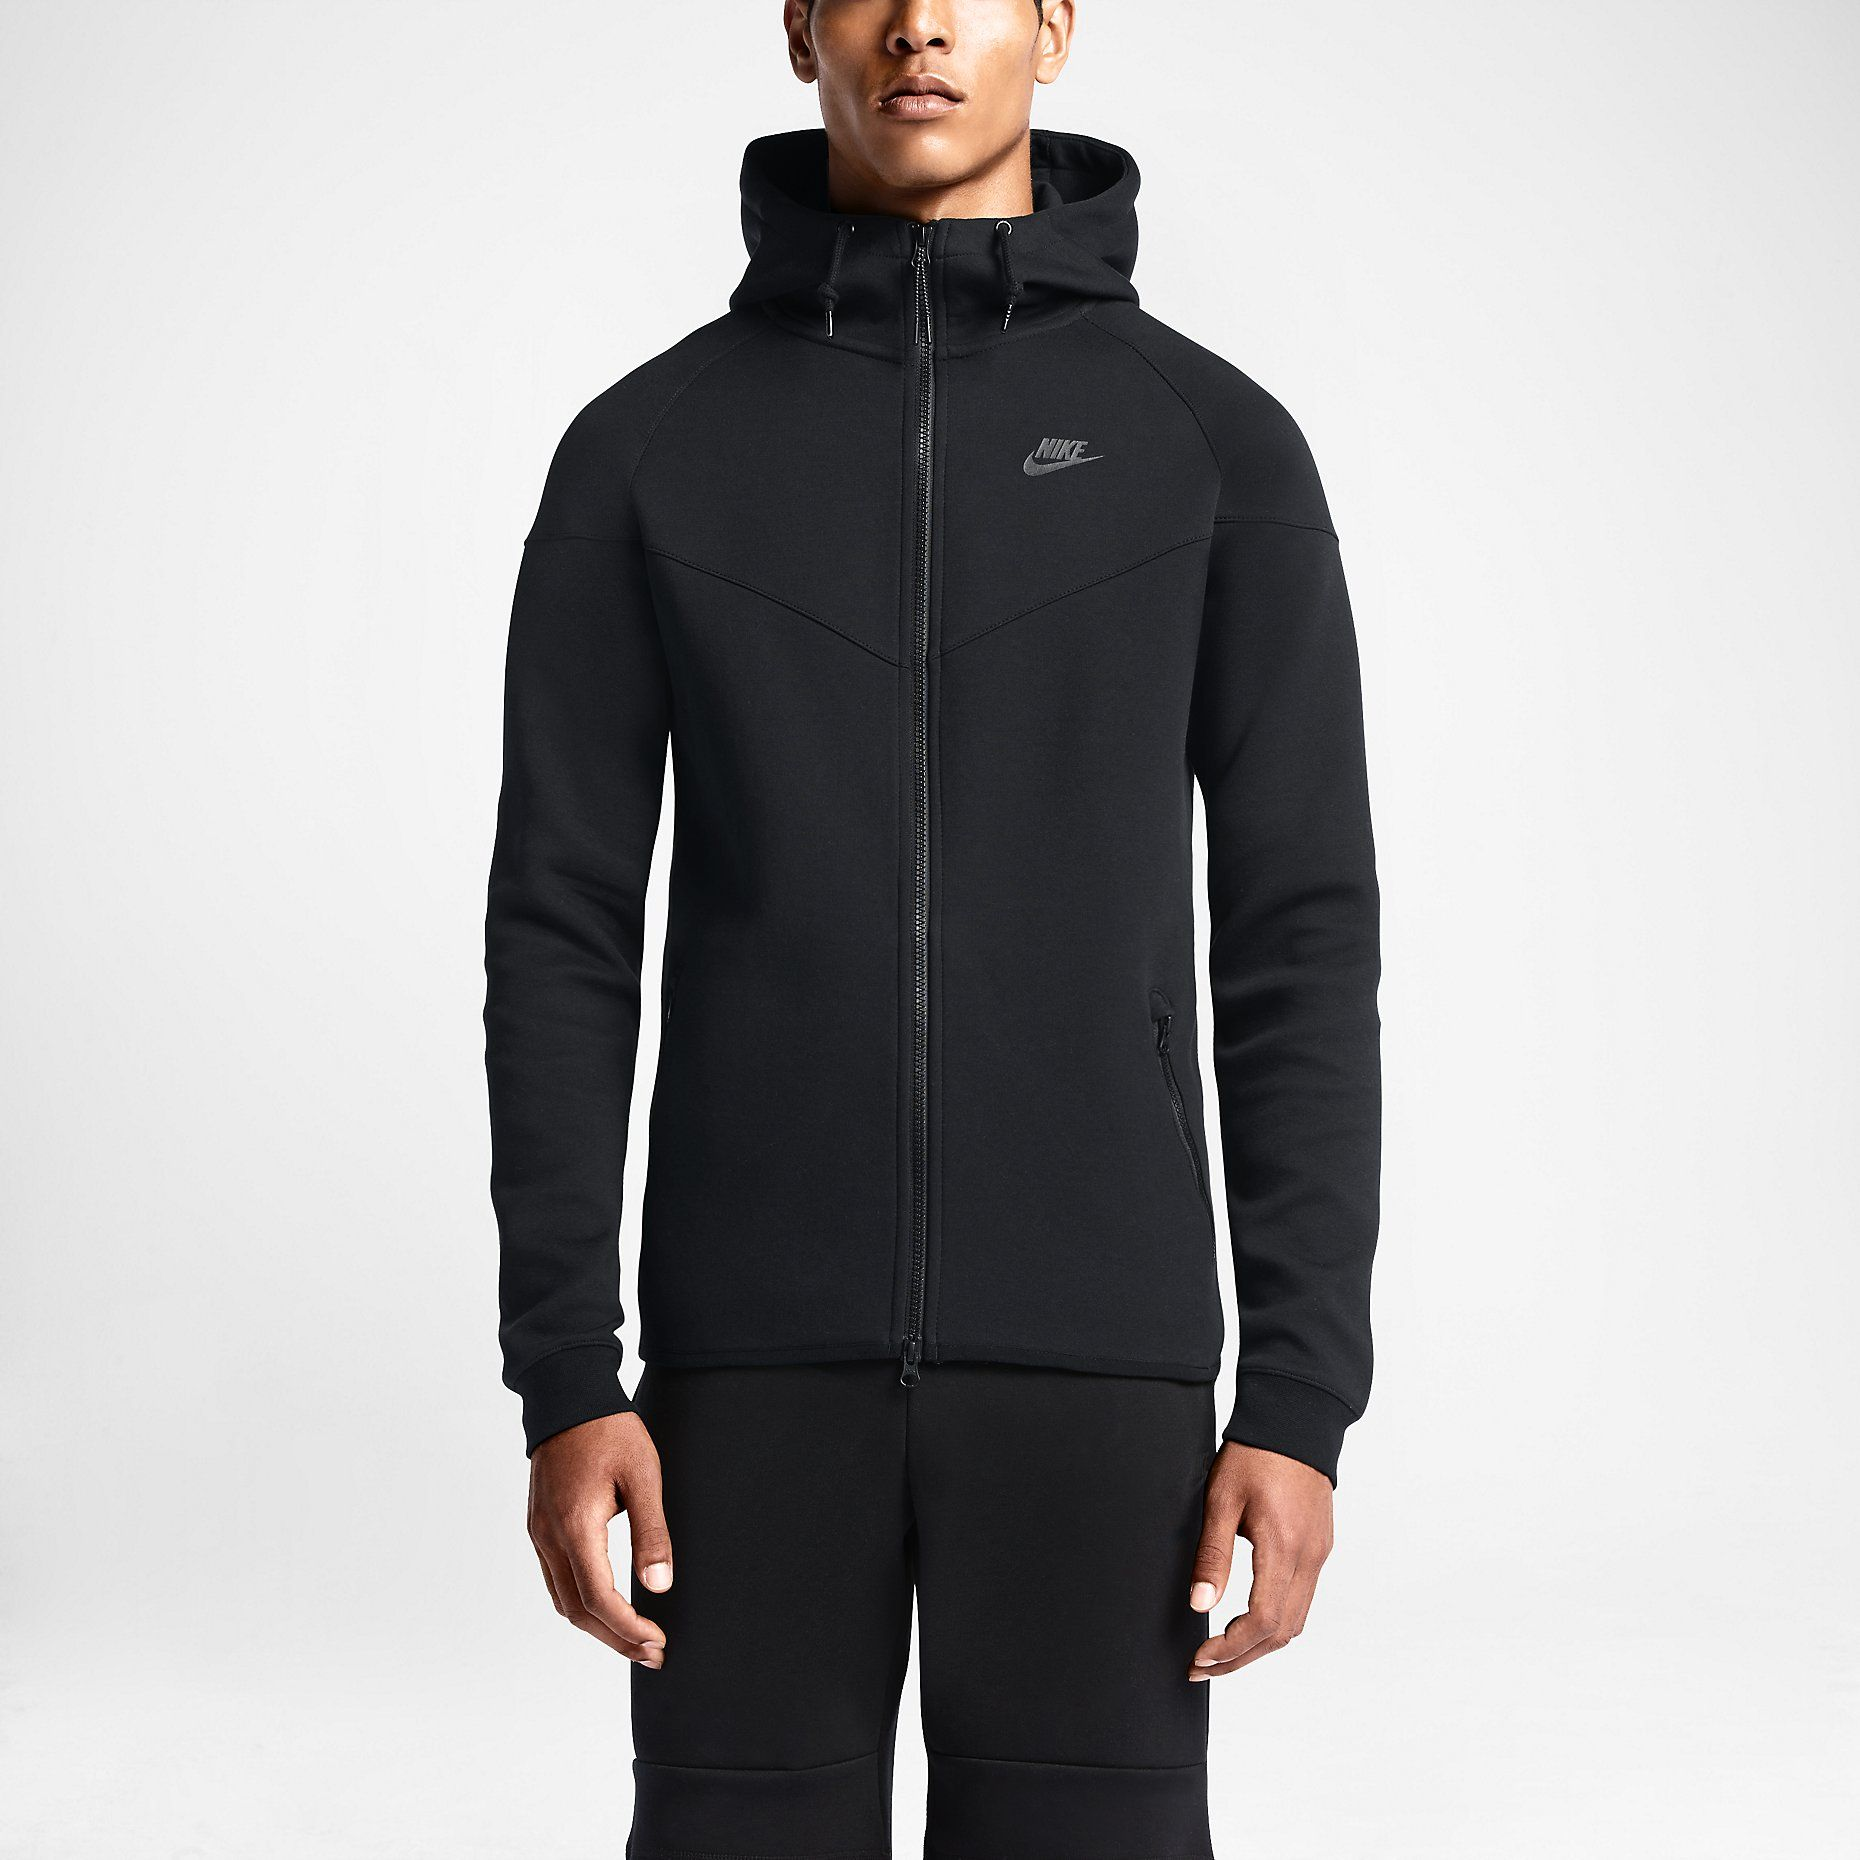 Nike Tech Fleece Windrunner Mens Hoodie Jacket L Black 545277 011